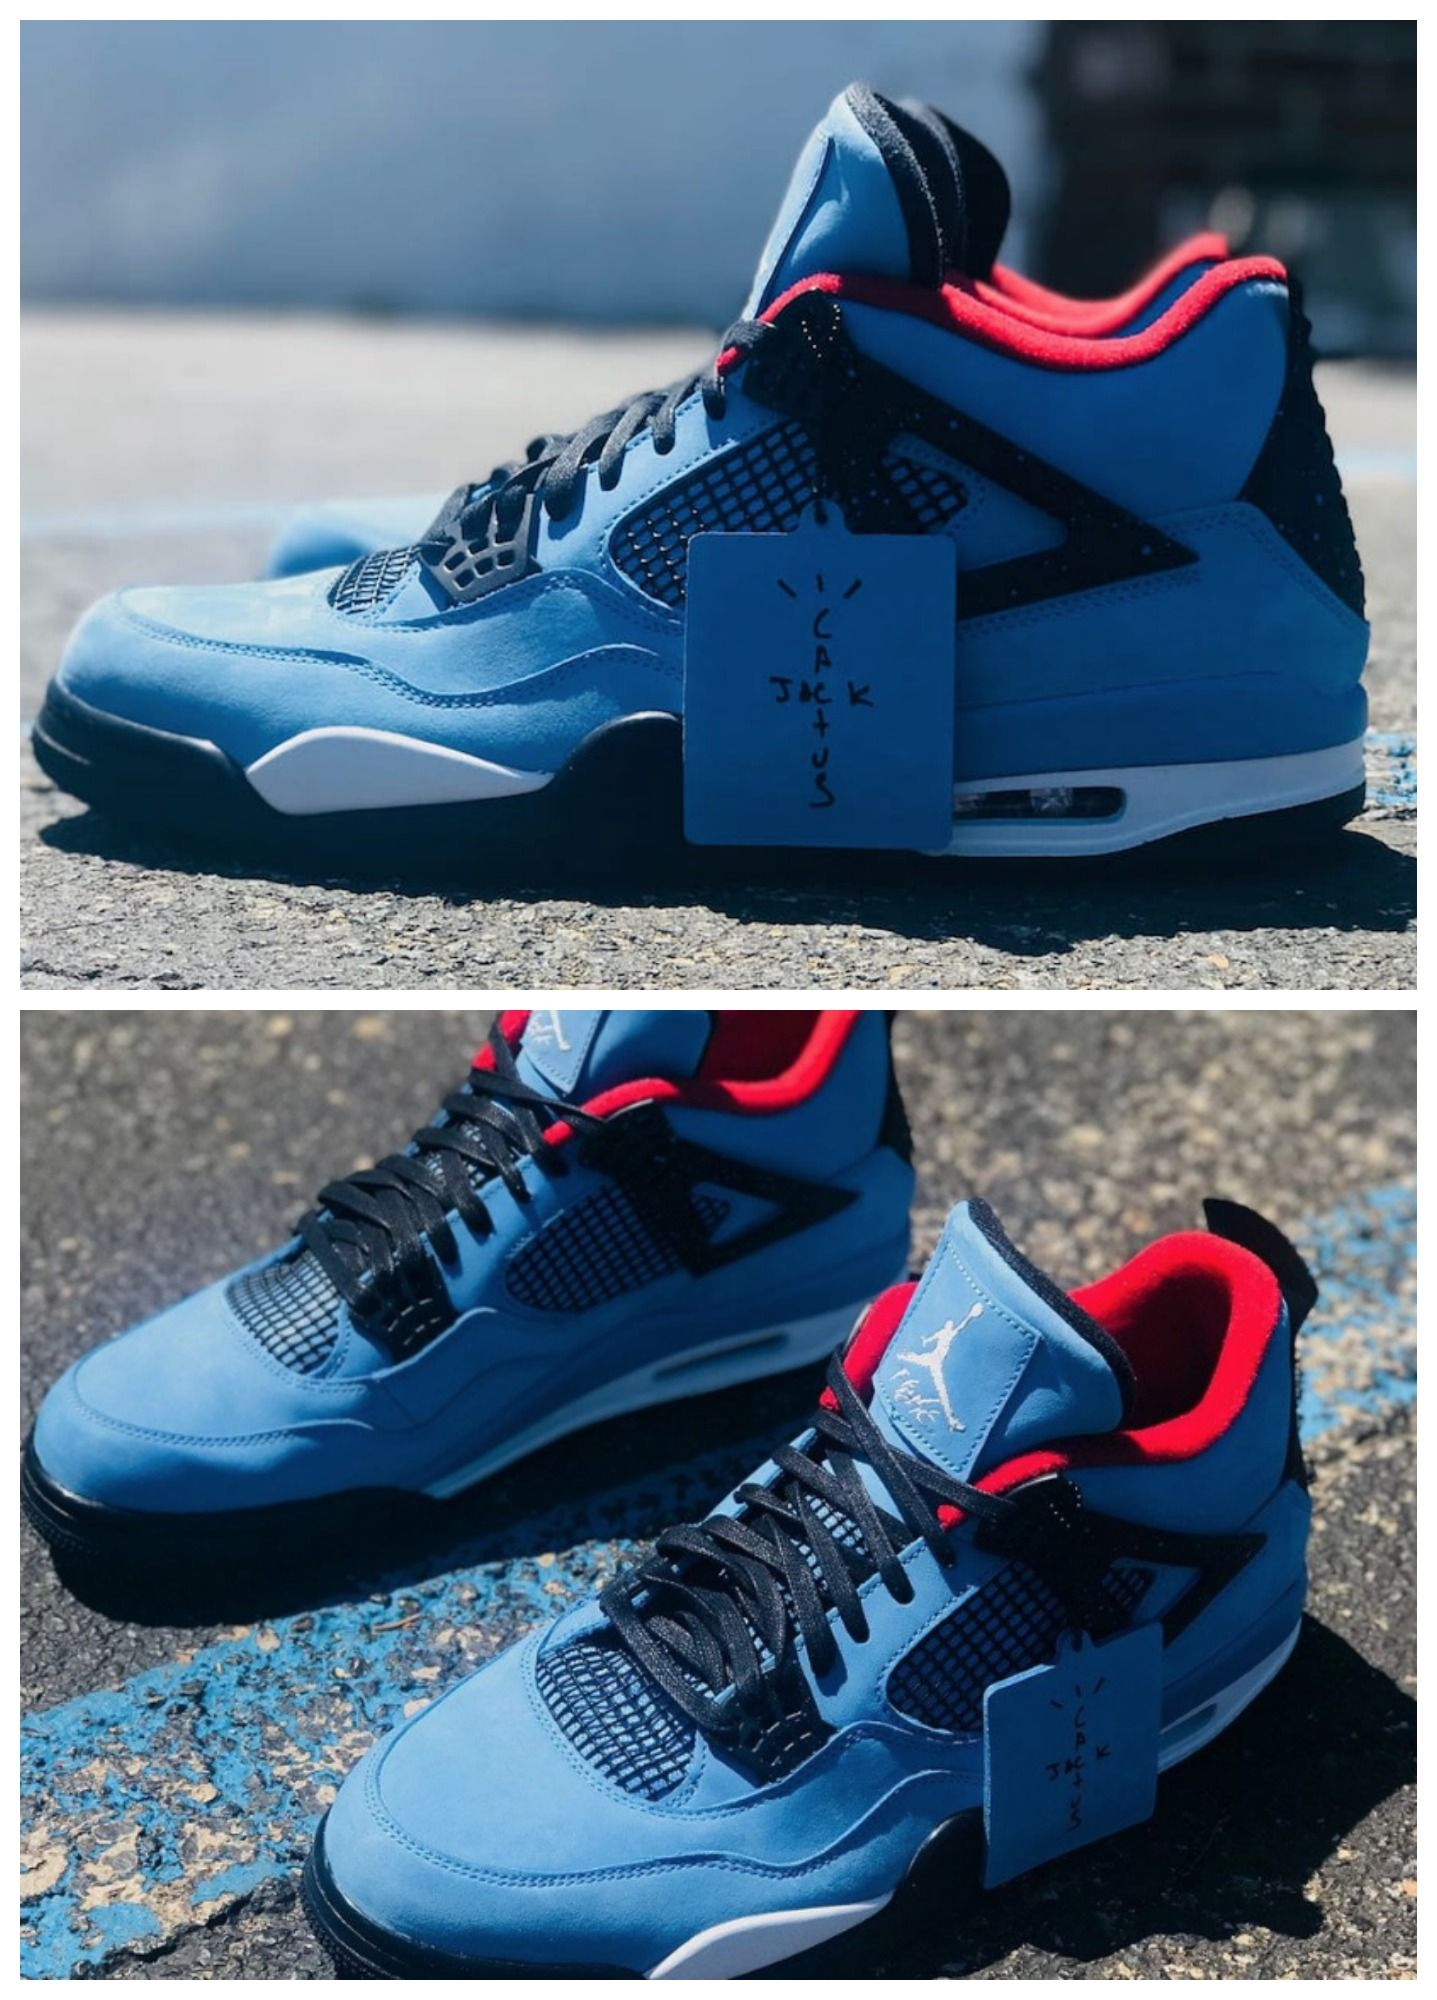 79b39a4ddc337 Travis Scott x Air Jordan 4